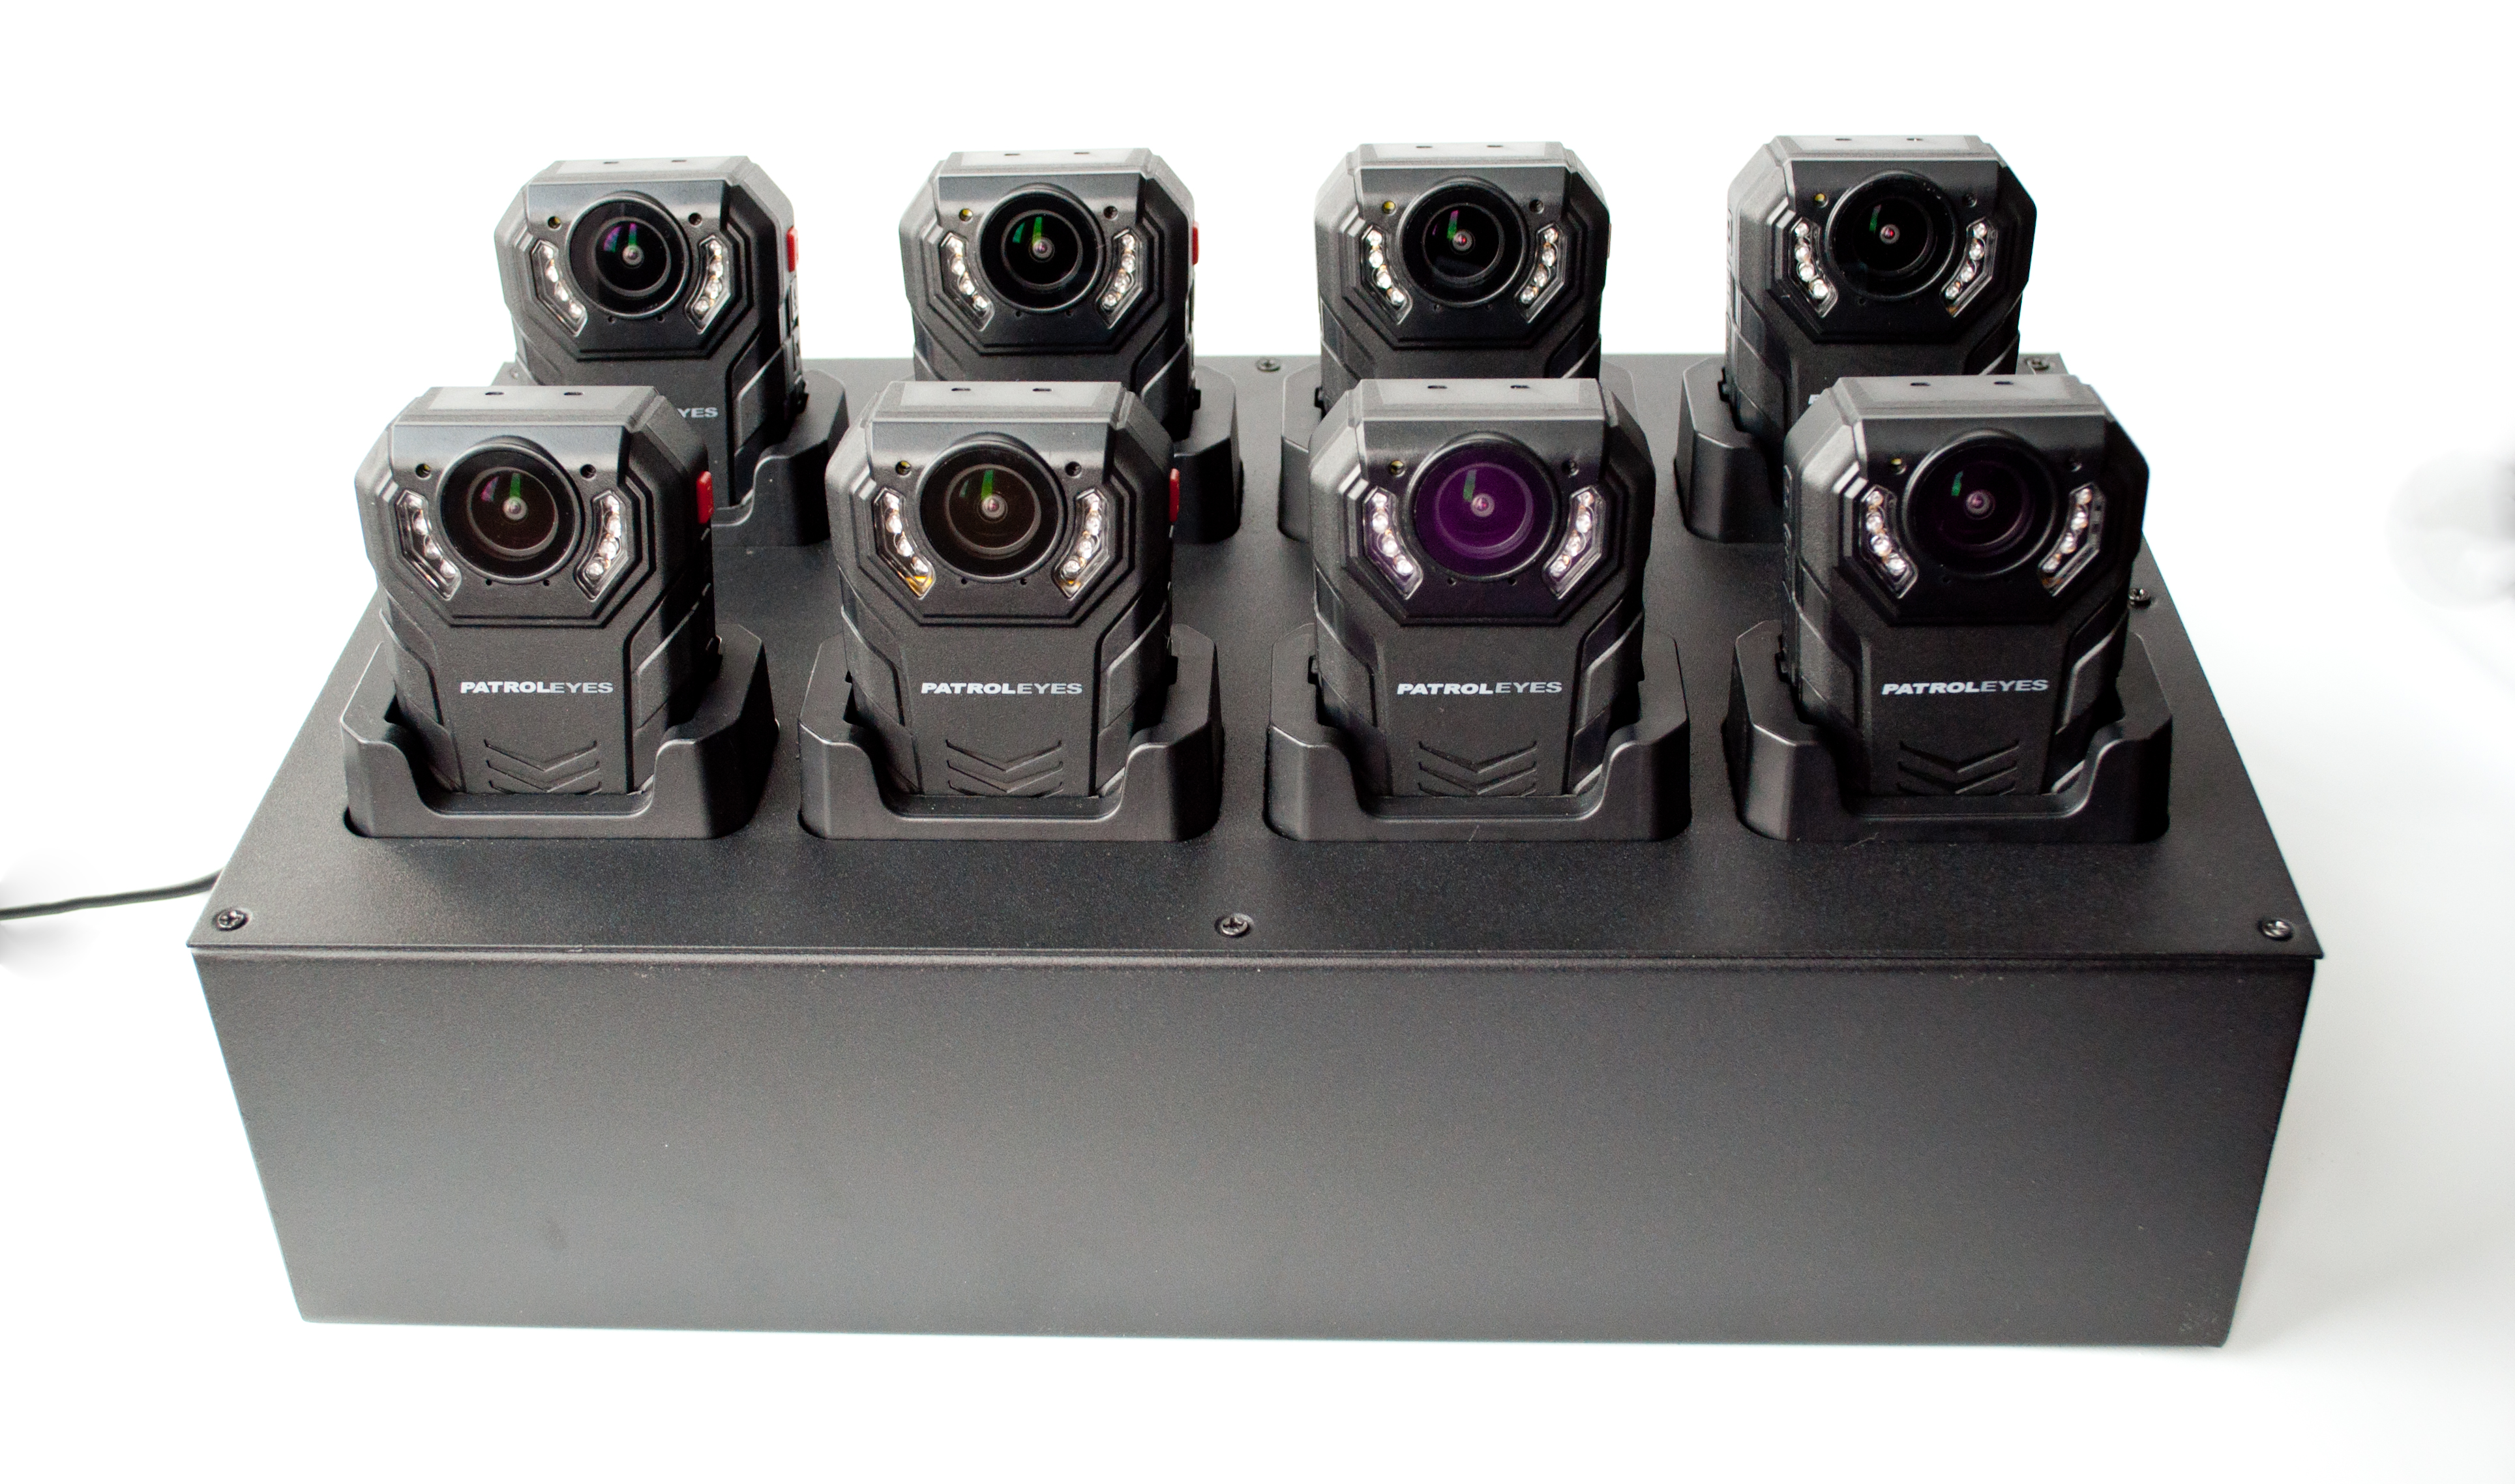 PatrolEyes SC-DV7 Police Data Transfer 8 Camera Docking Station